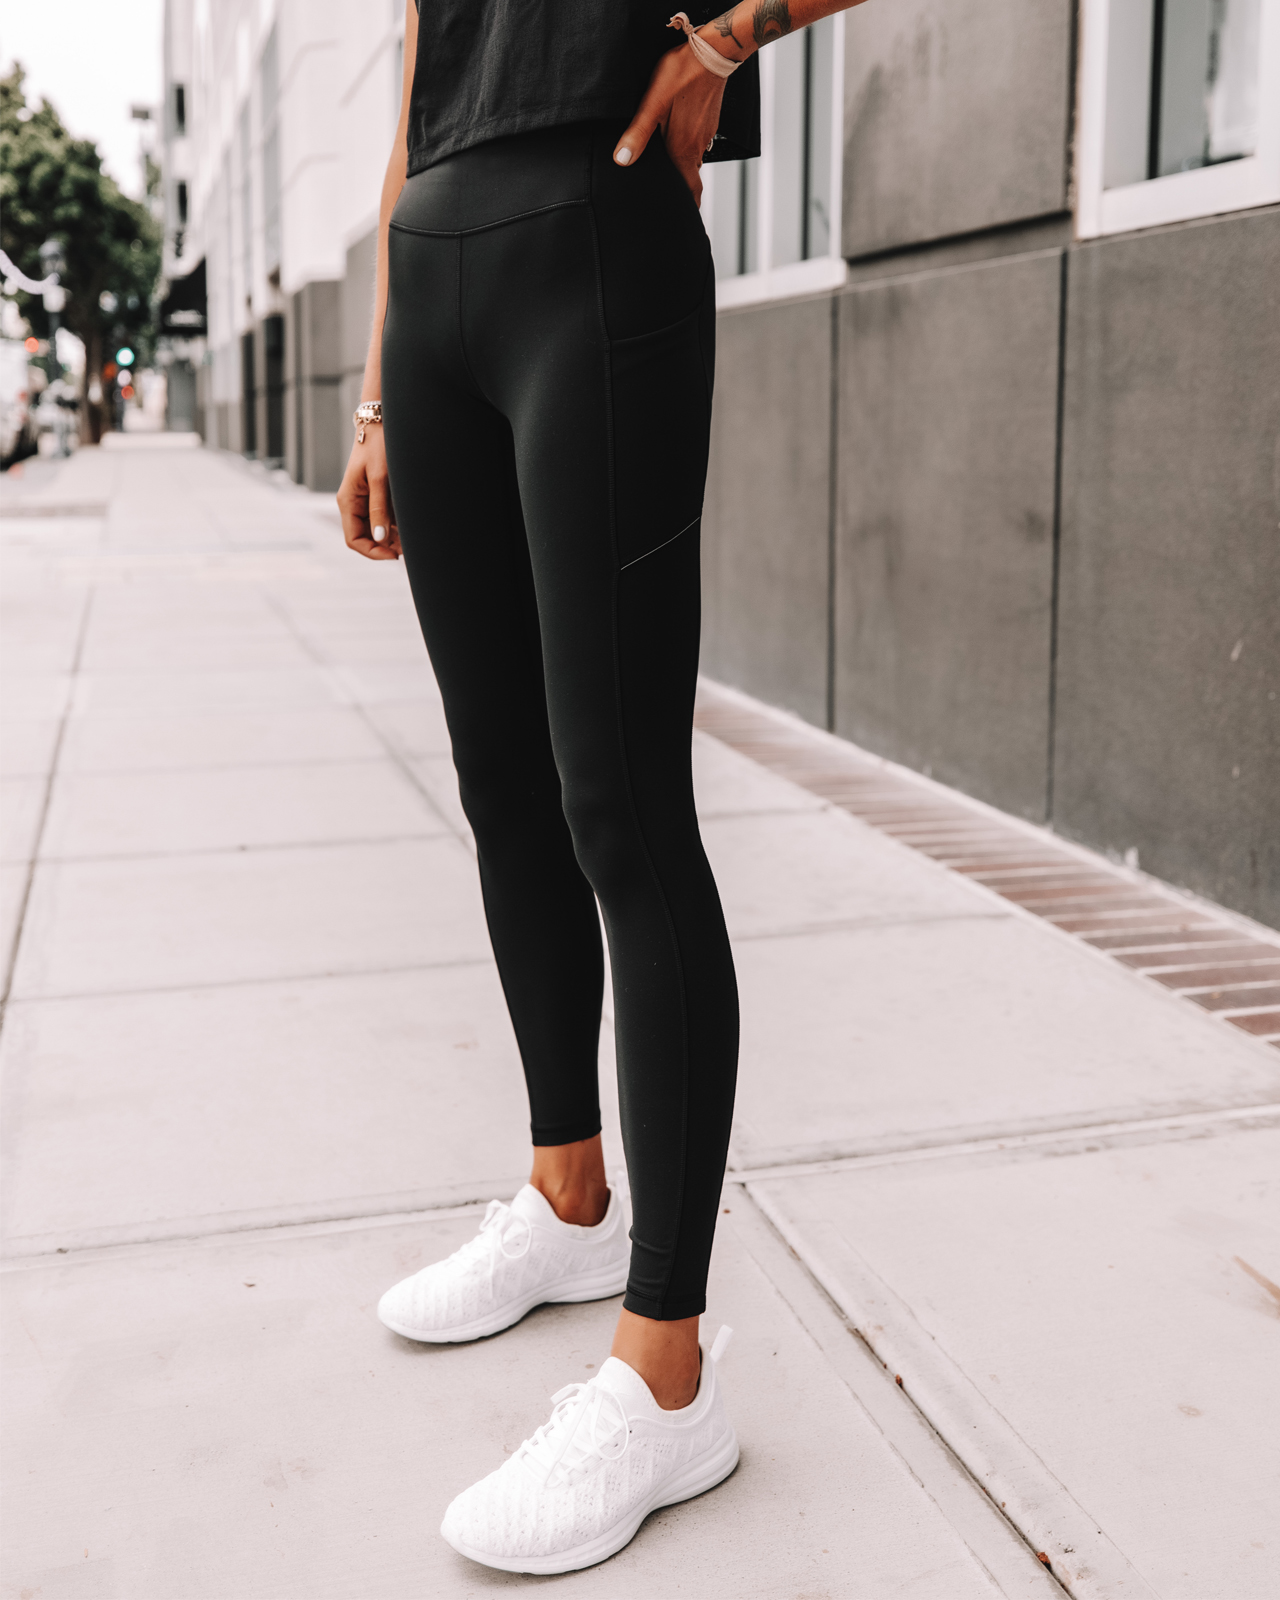 Fashion Jackson Wearing lululemon Speed Up Tights Black Leggings APL White Sneakers